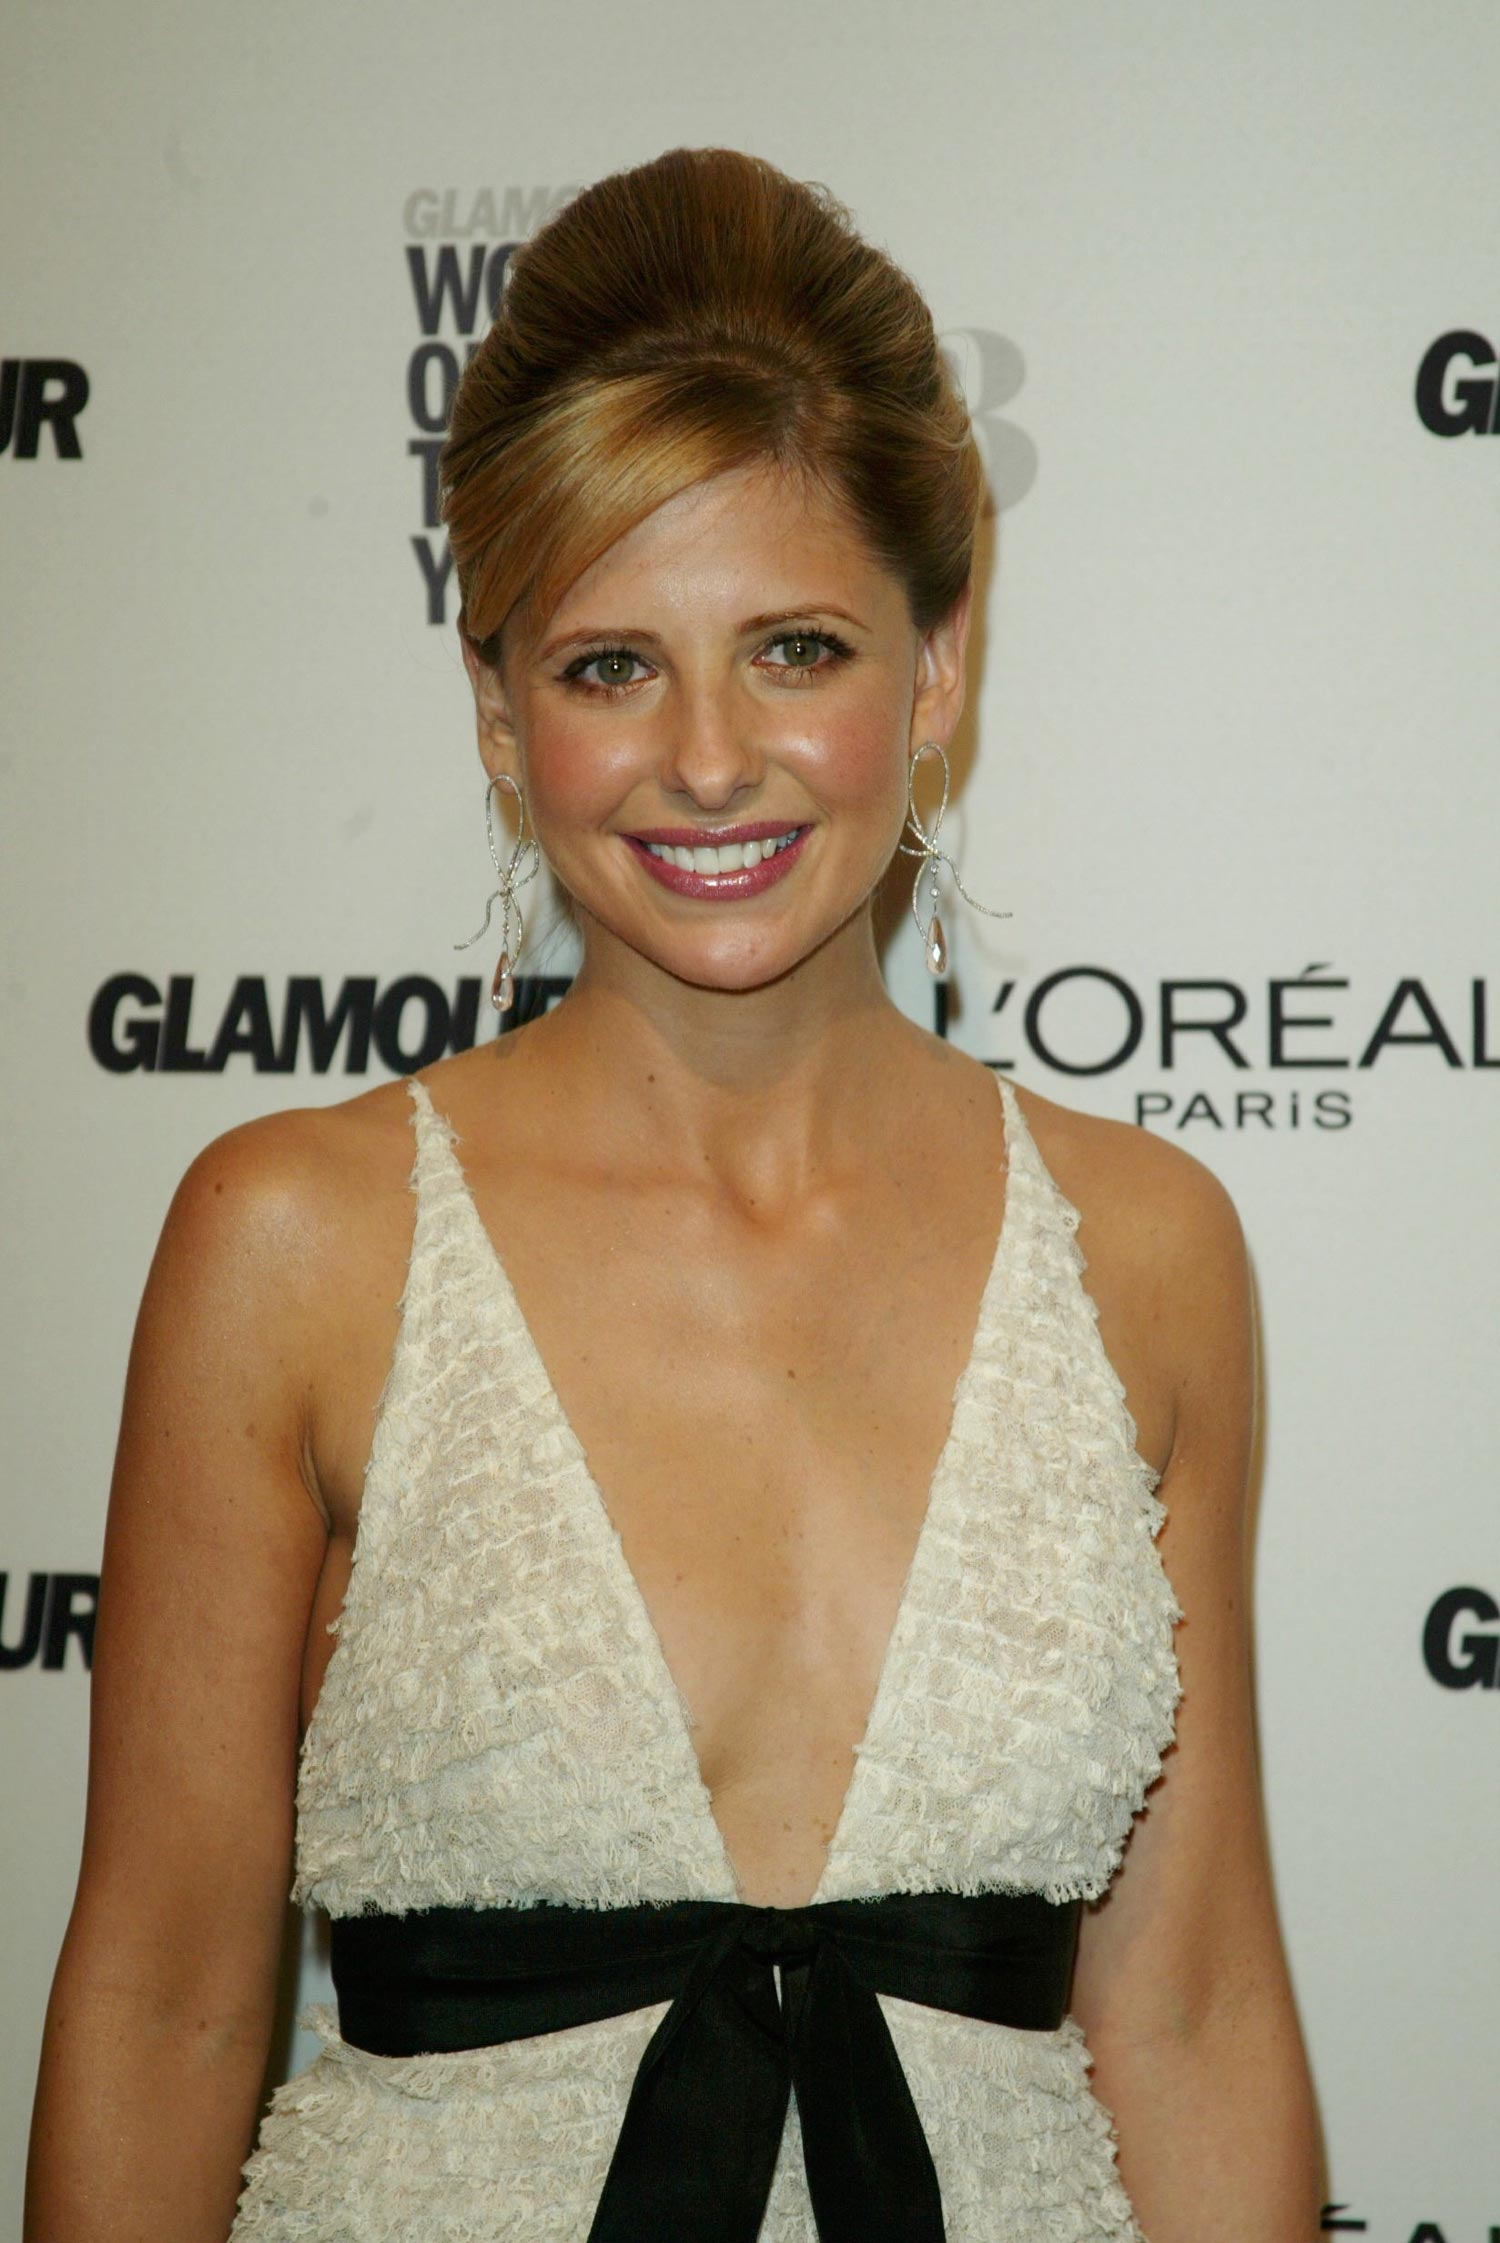 IMG/jpg/sarah-michelle-gellar-14th-glamour-mag-women-year-awards-hq-32-1500. (...)